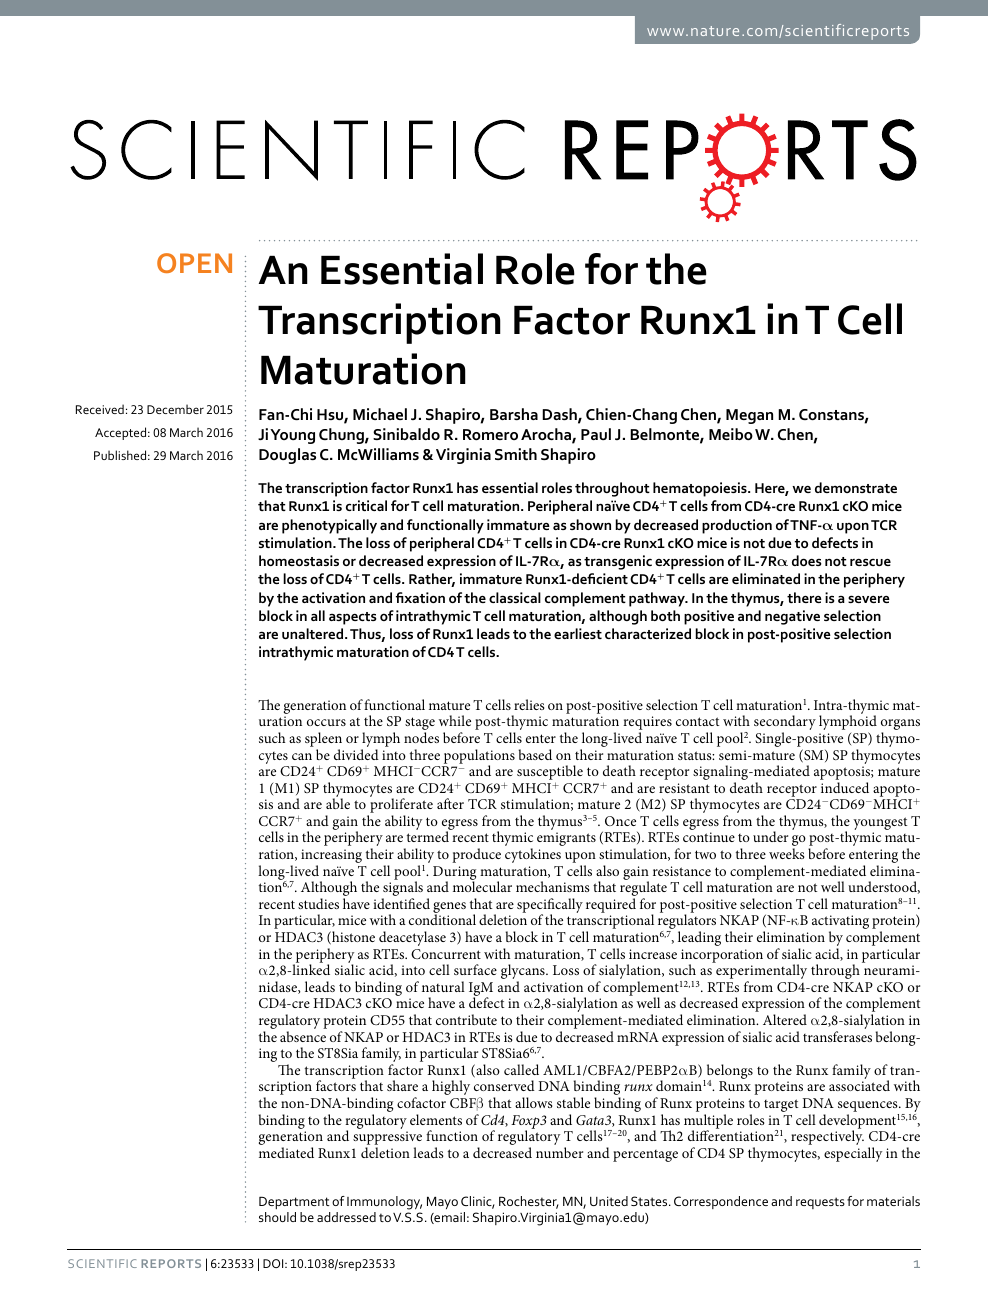 An Essential Role for the Transcription Factor Runx1 in T Cell